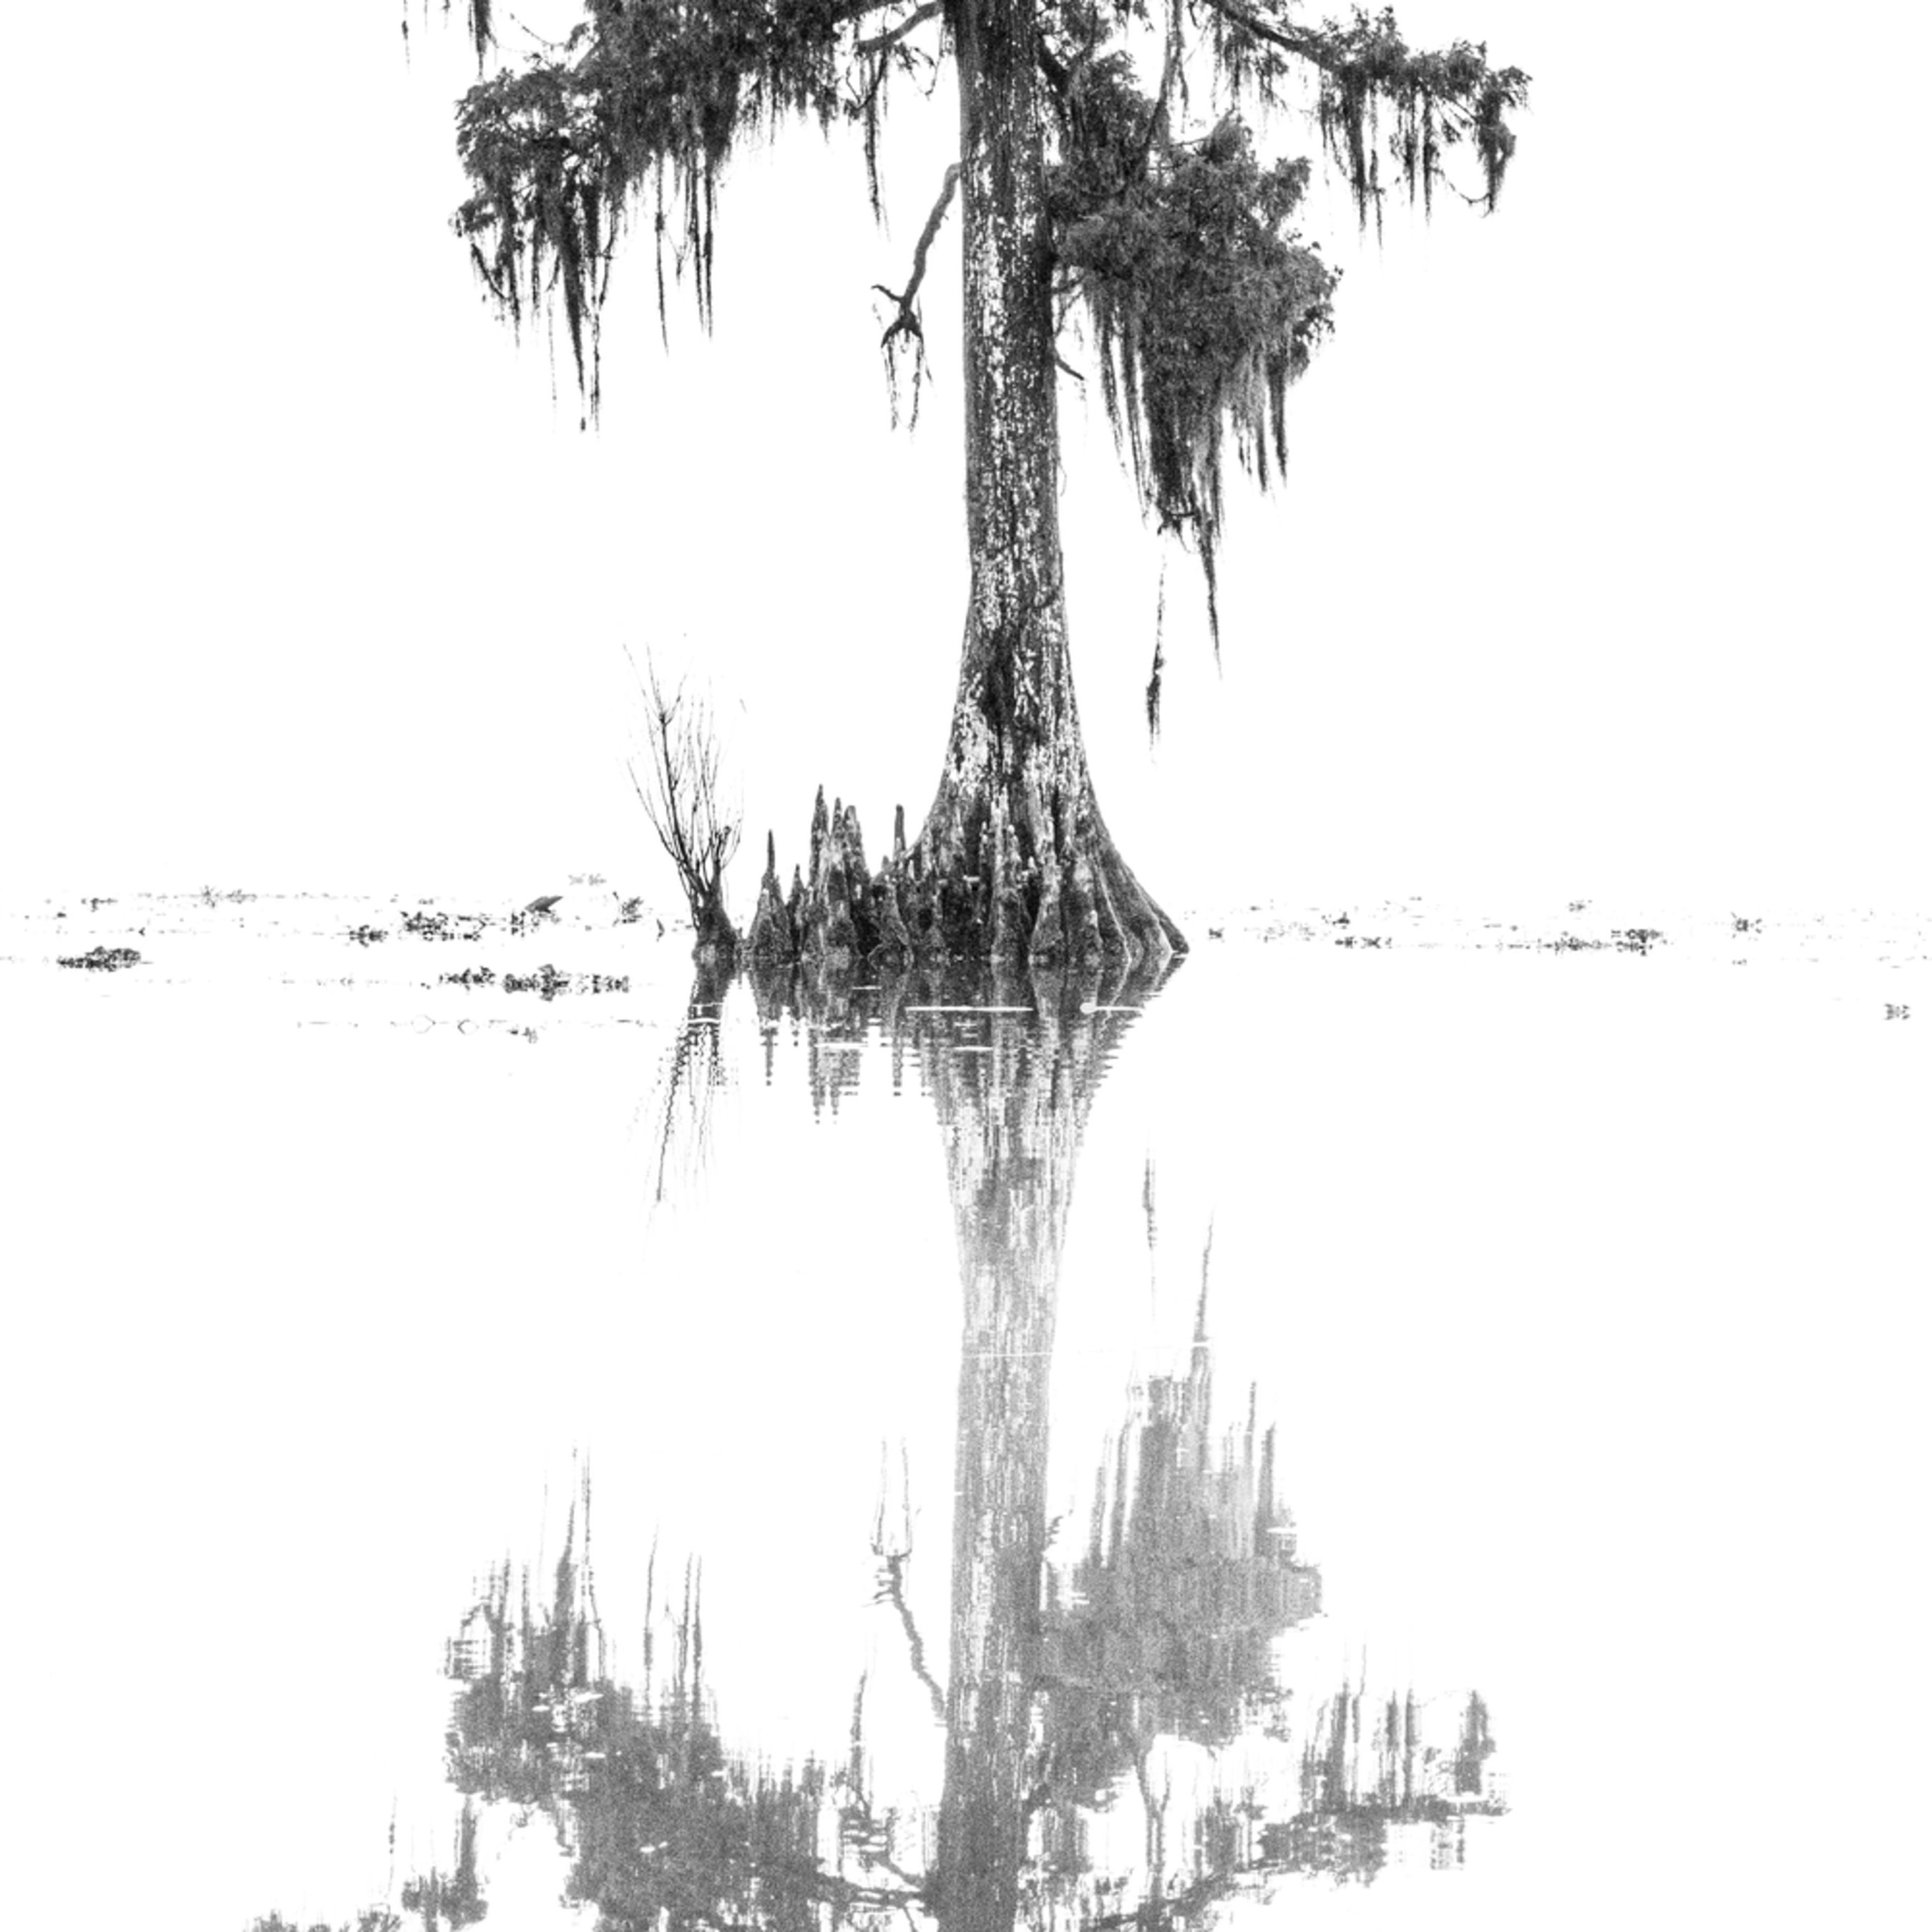 Andy crawford photography maurepas swamp 20171219 2 ioarz7